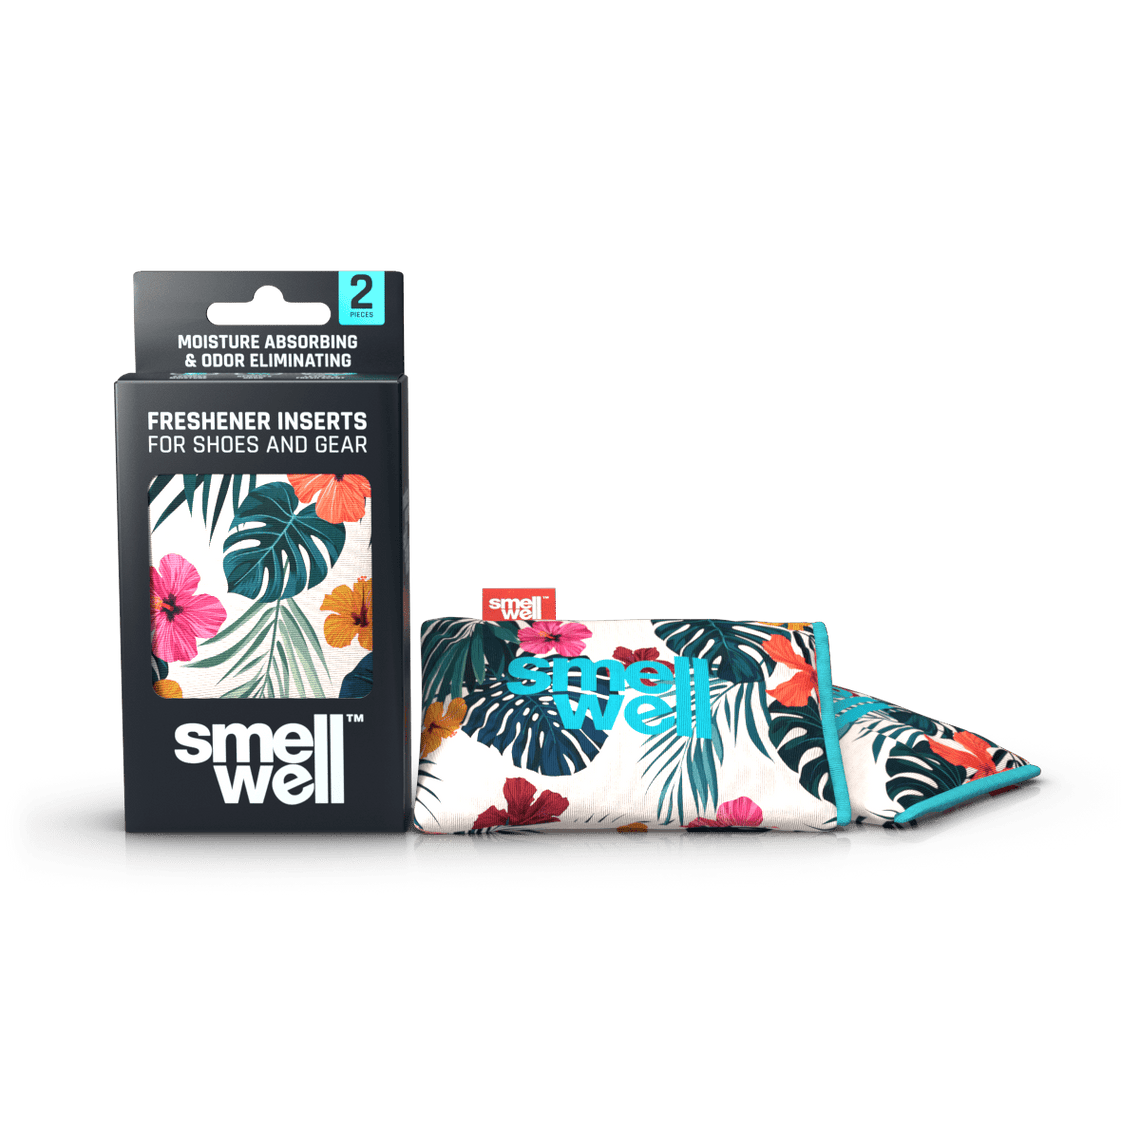 A package of SmellWell Active - Hawaii Floral and 2 SmellWell Active - Hawaii Floral freshener inserts bags next to it